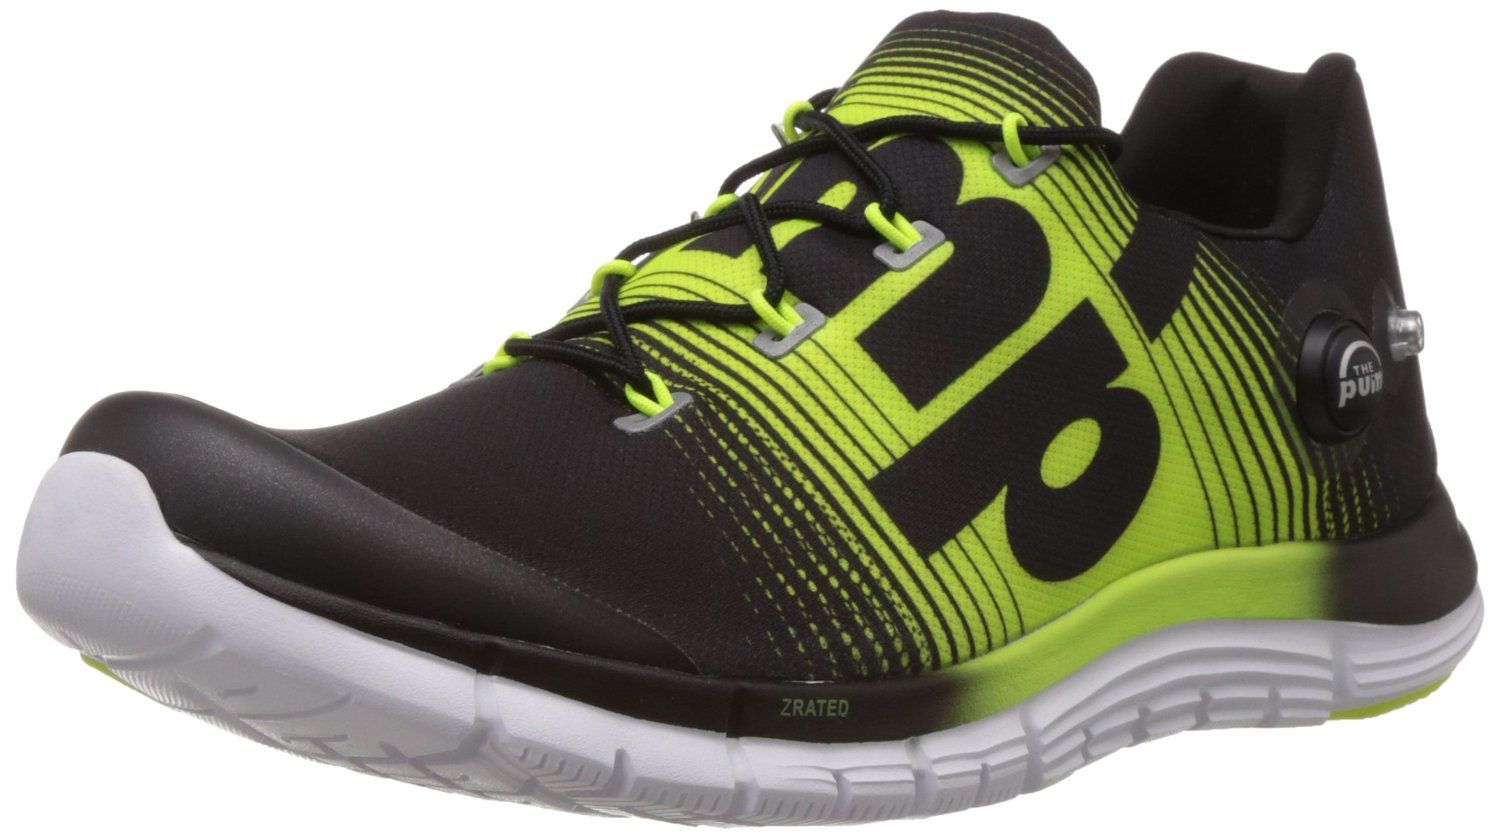 Reebok Men s Zpump Fusion Running Shoes  Buy Online at Low Prices in India  - Amazon.in b5f7a380d